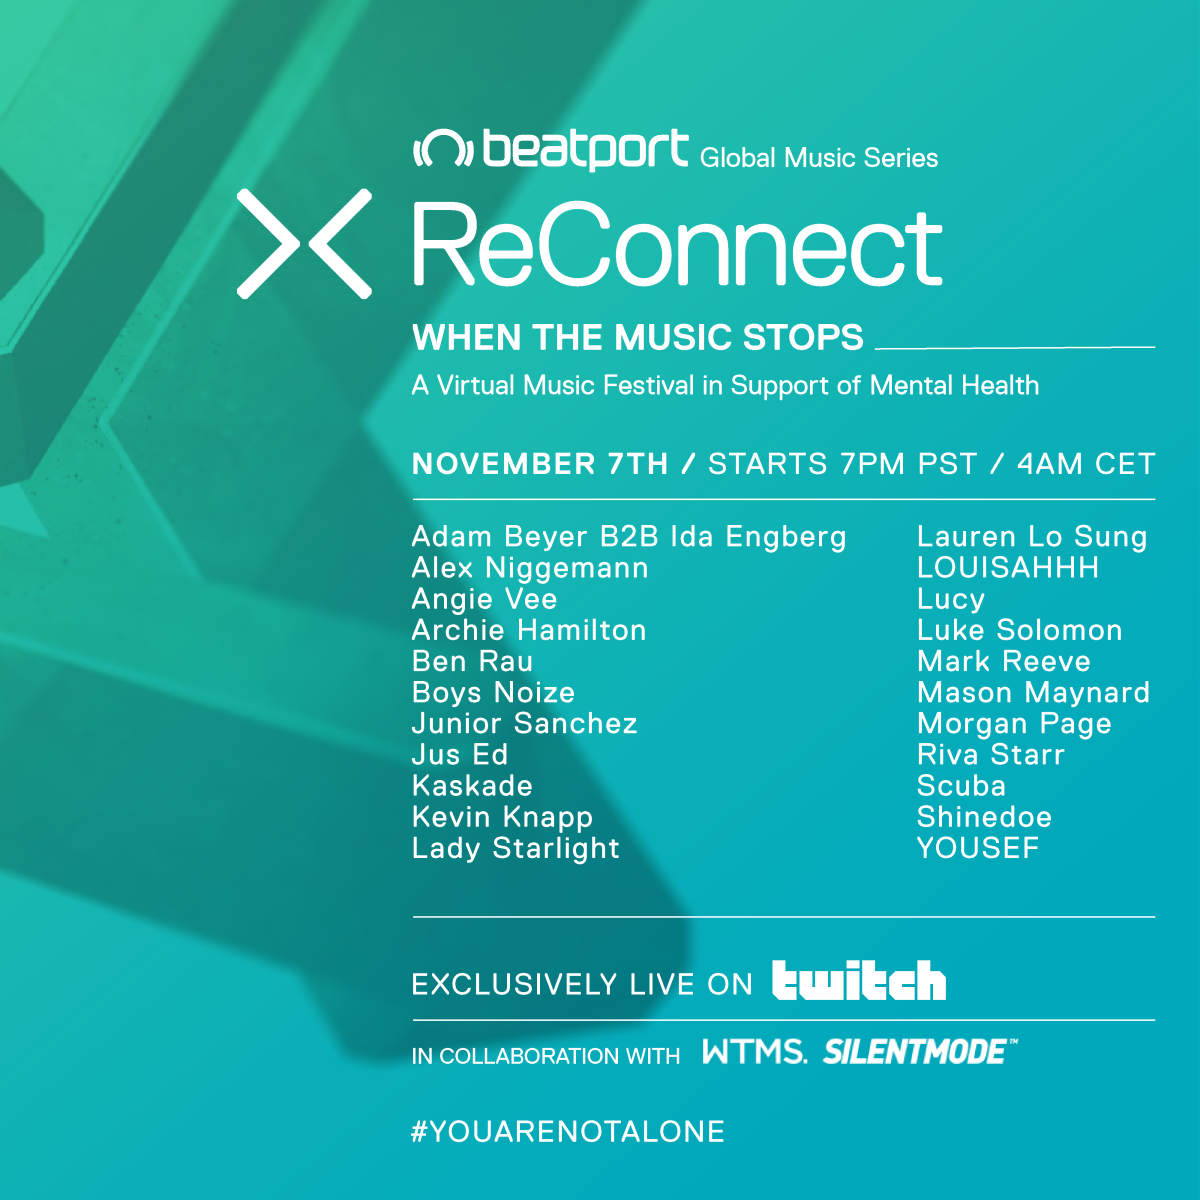 Beatport_ReConnect_WhenTheMusicStops_InstaFeed_Slide1